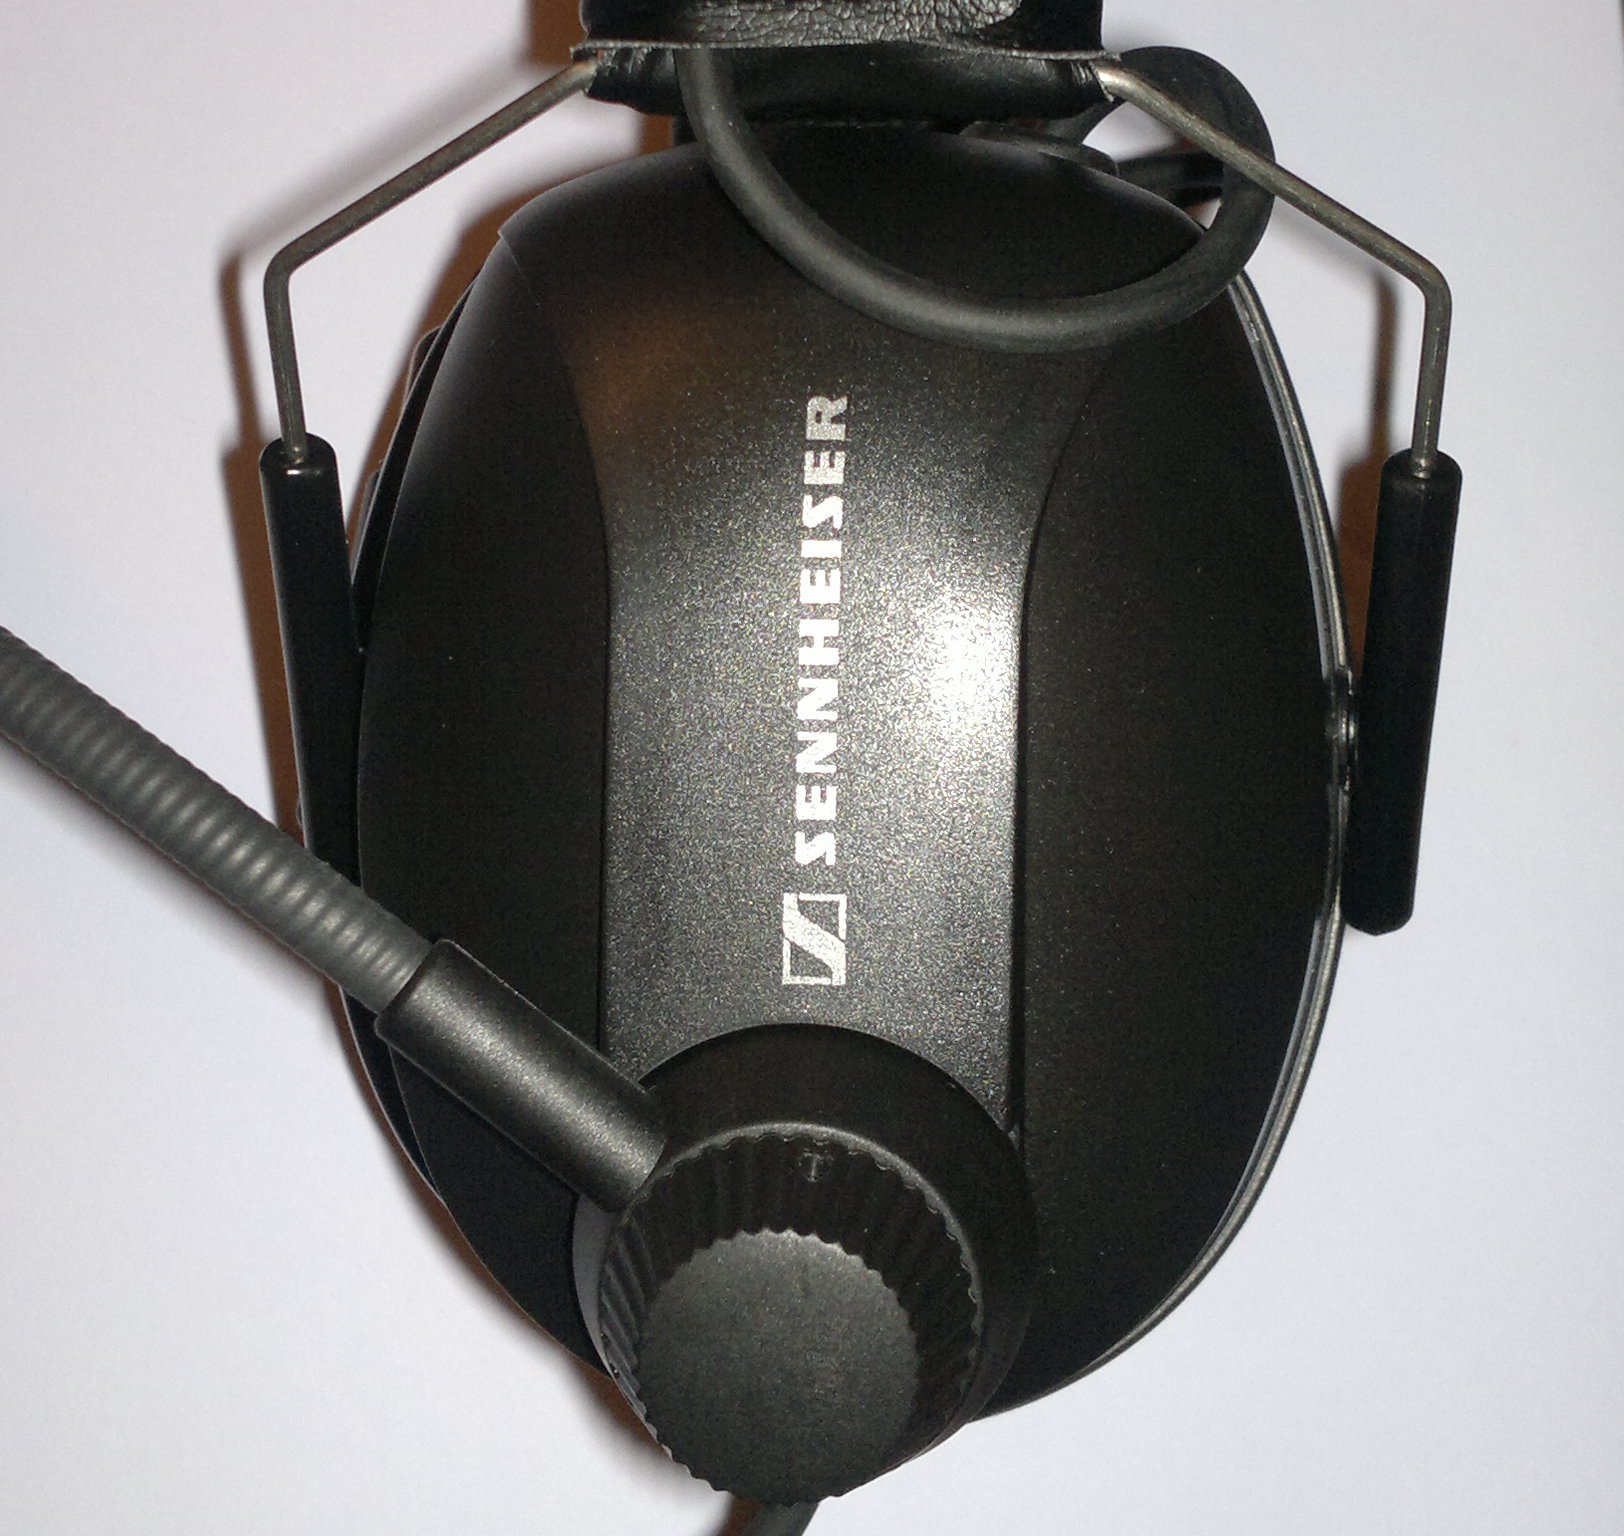 Sennheiser HME-110 Side view